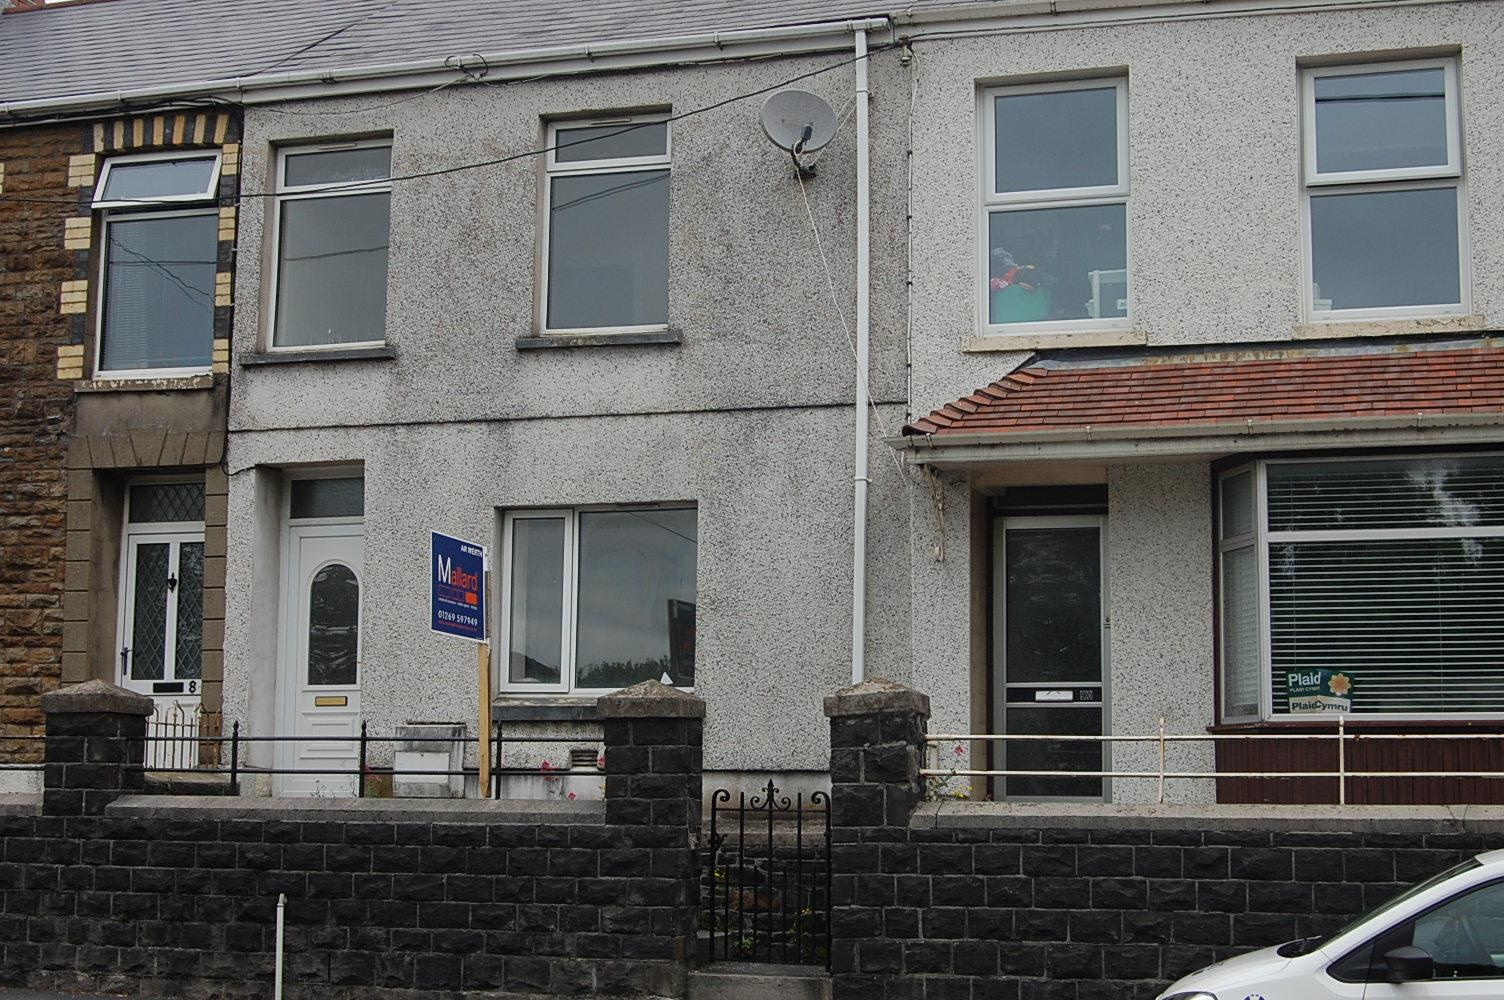 94 High Street, Ammanford, Carmarthenshire